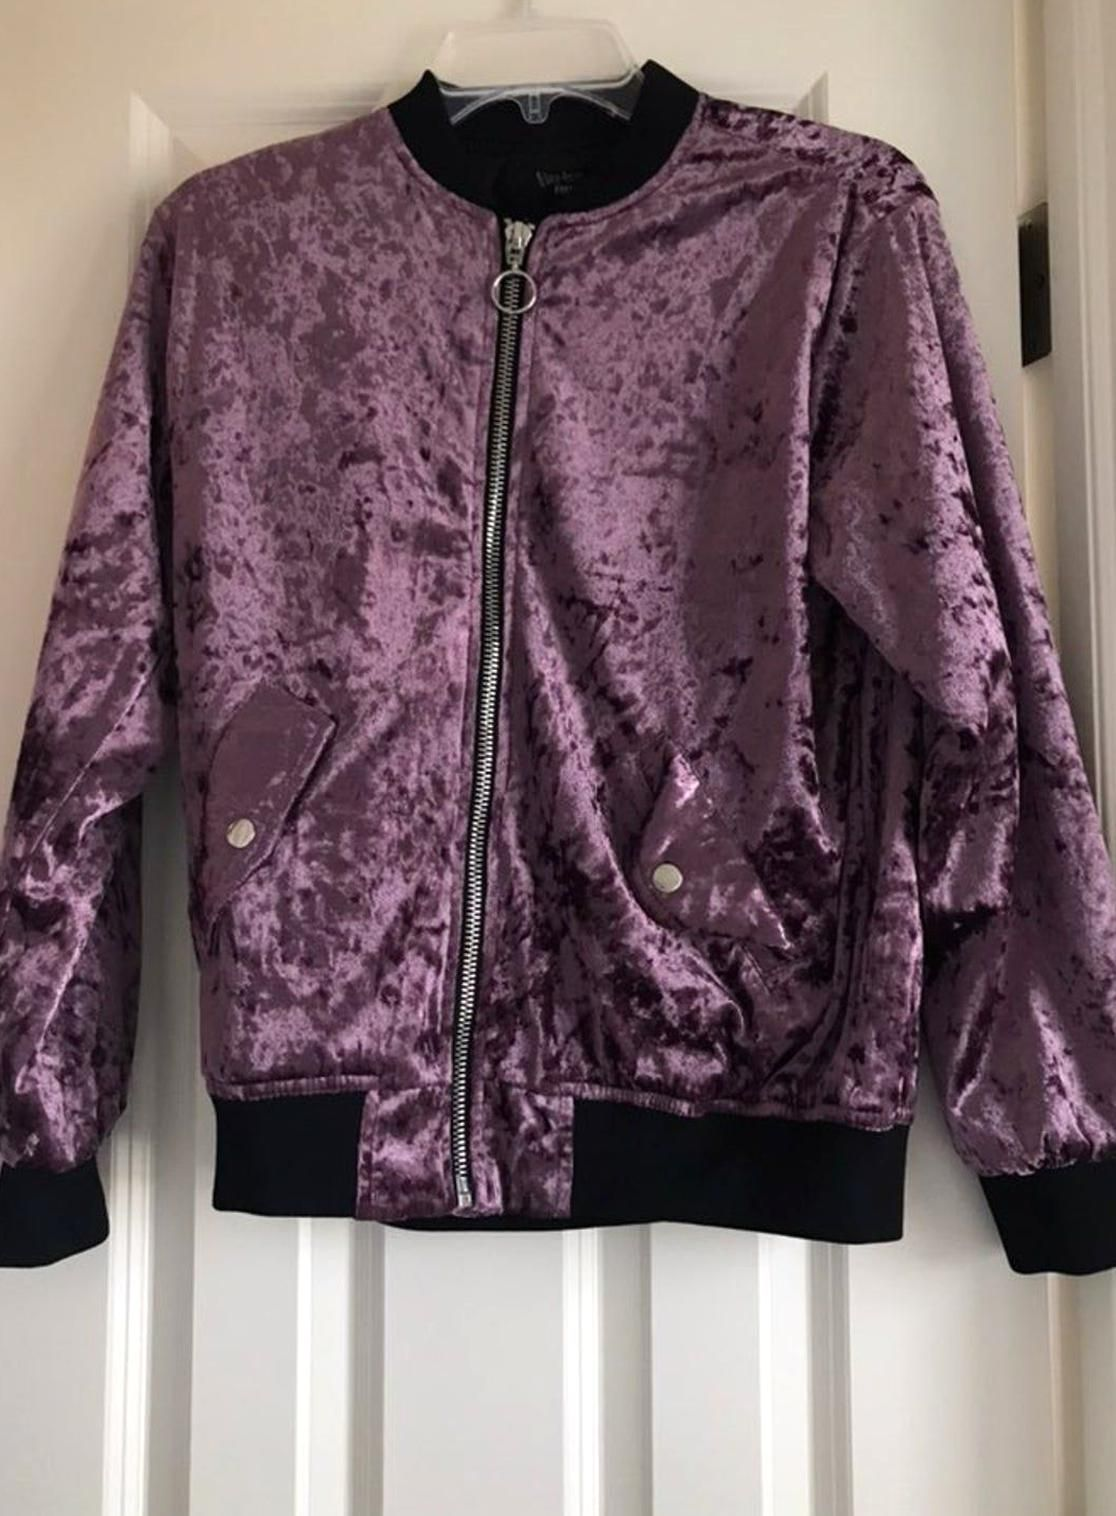 Forever 21 Purple Velvet Bomber Jacket Lightly Used Has Pockets With Buttons Ring On Zipper In 2020 Bomber Jacket Forever 21 Bomber Jacket Velvet Bomber [ 1516 x 1116 Pixel ]